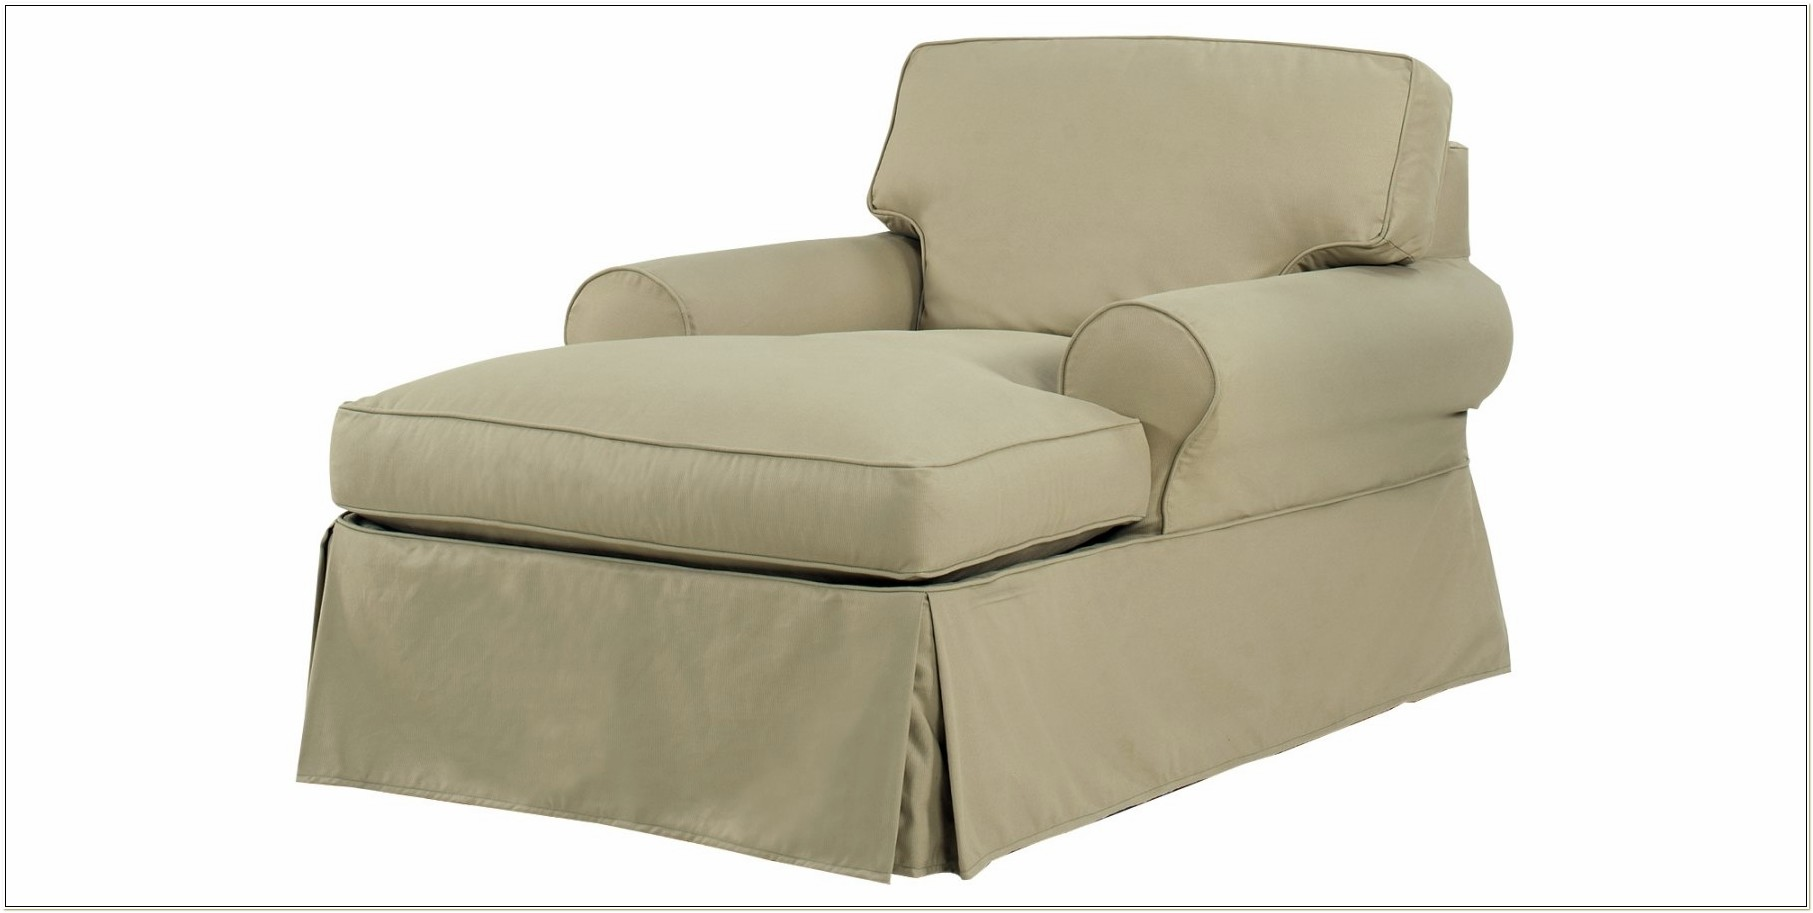 Indoor Chaise Lounge Chair Slipcovers